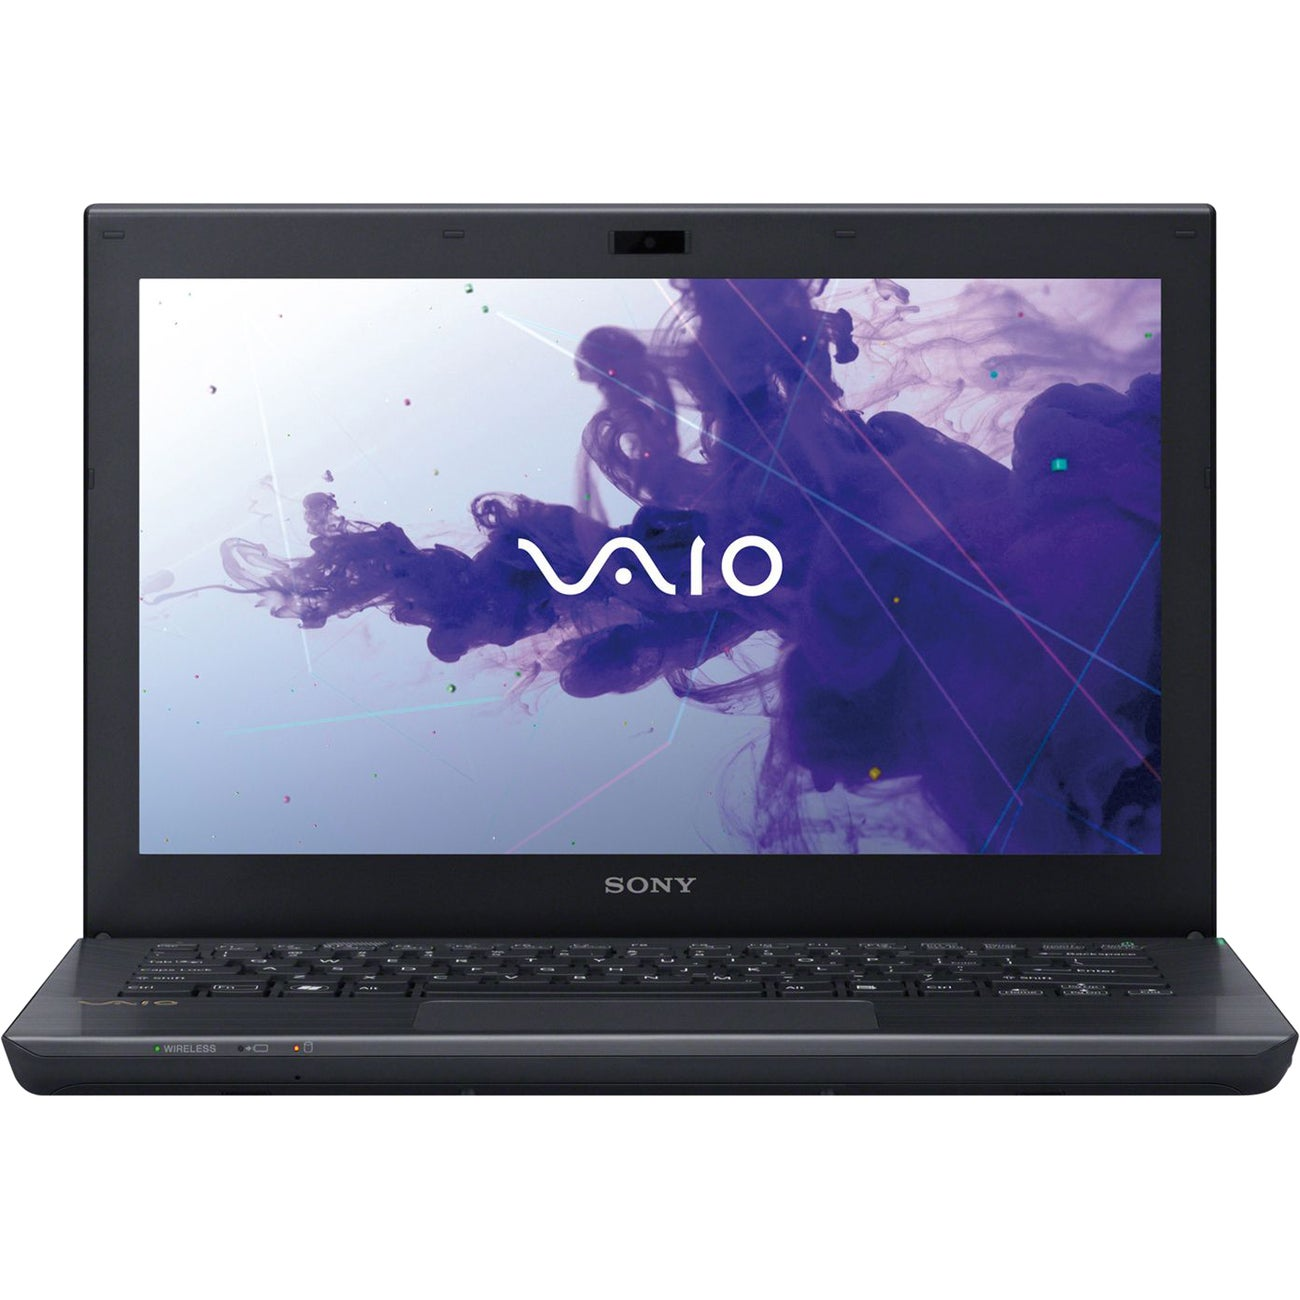 "Sony VAIO SVS13A18GX/B 13.3"" LED Notebook - Intel Core i7 i7-3520M 2."